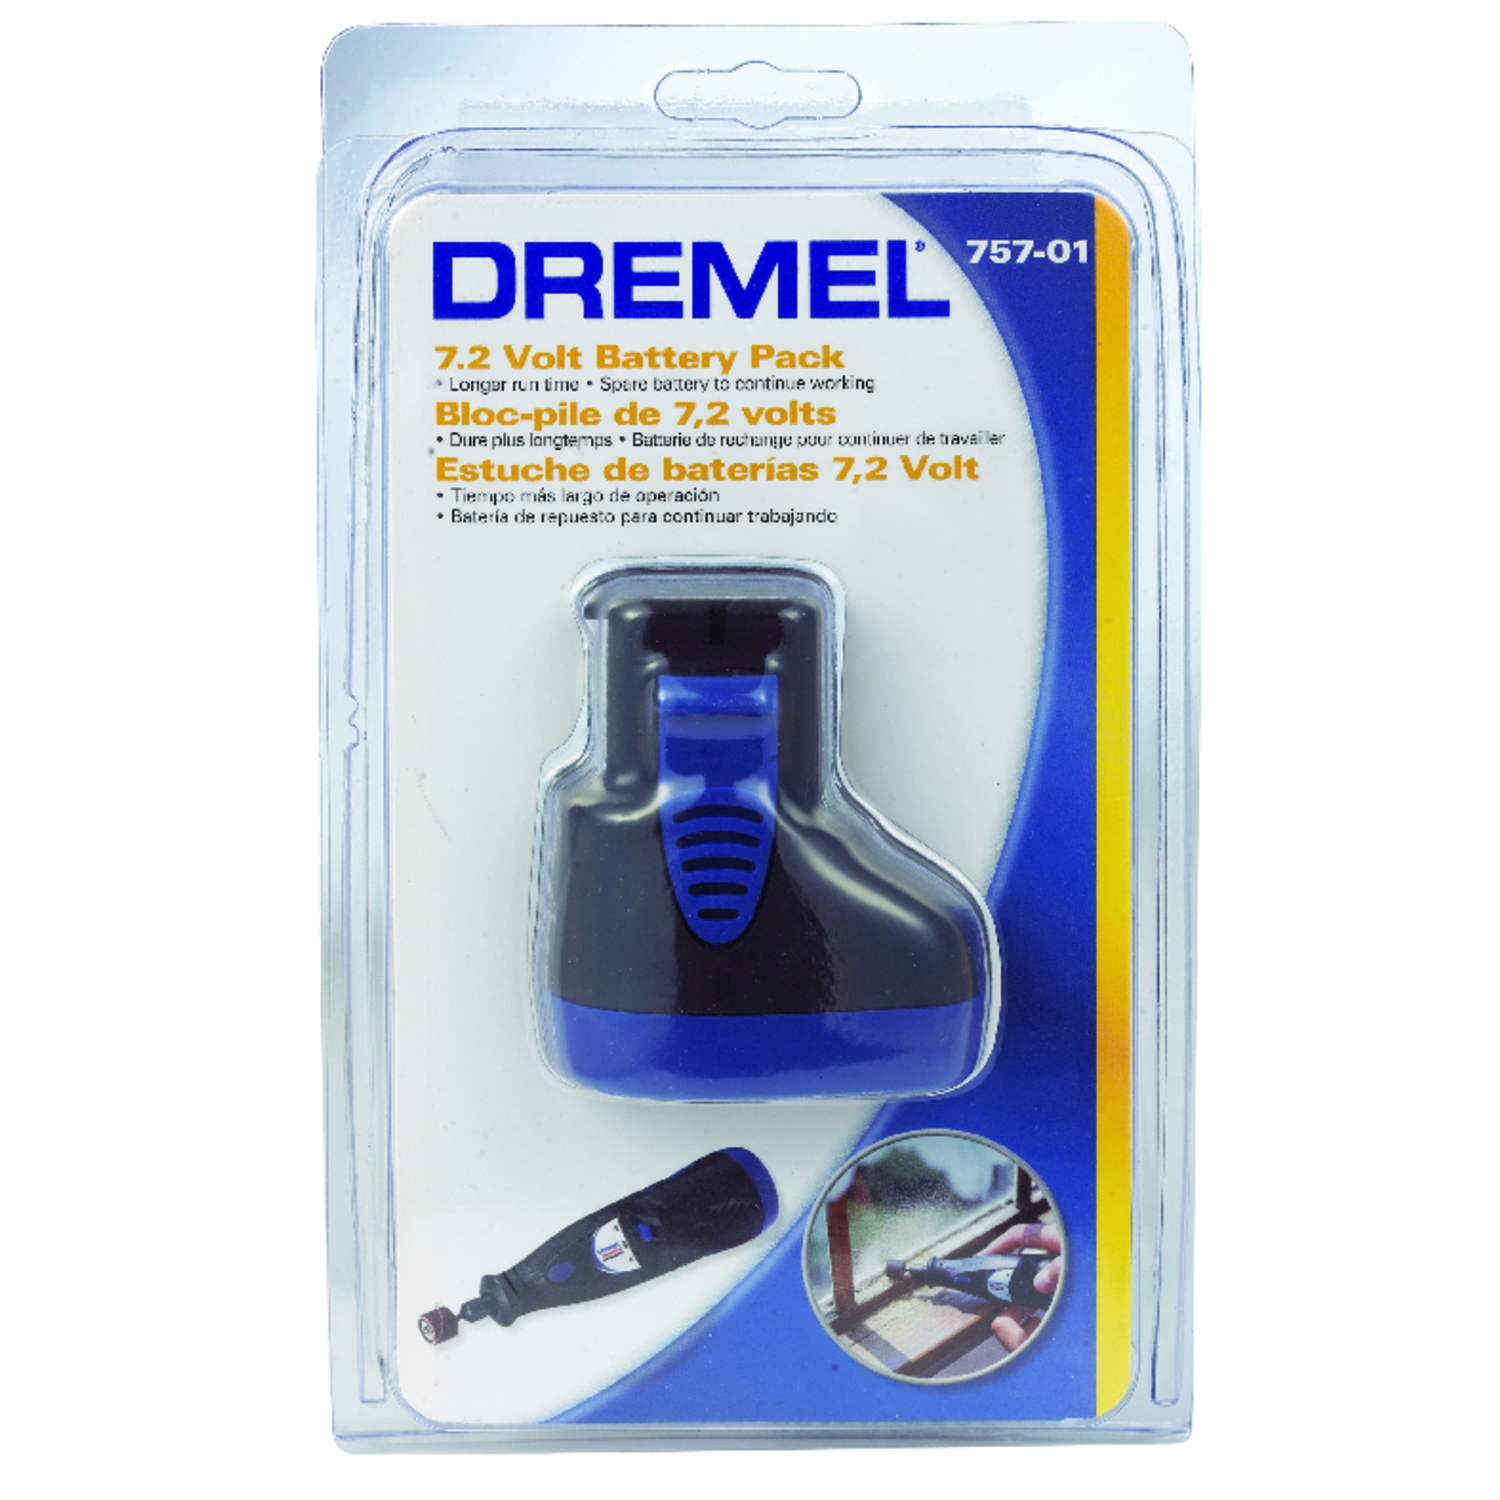 Dremel  MultiPro  7.2 volts Ni-Cad  Battery Pack  1 pc.